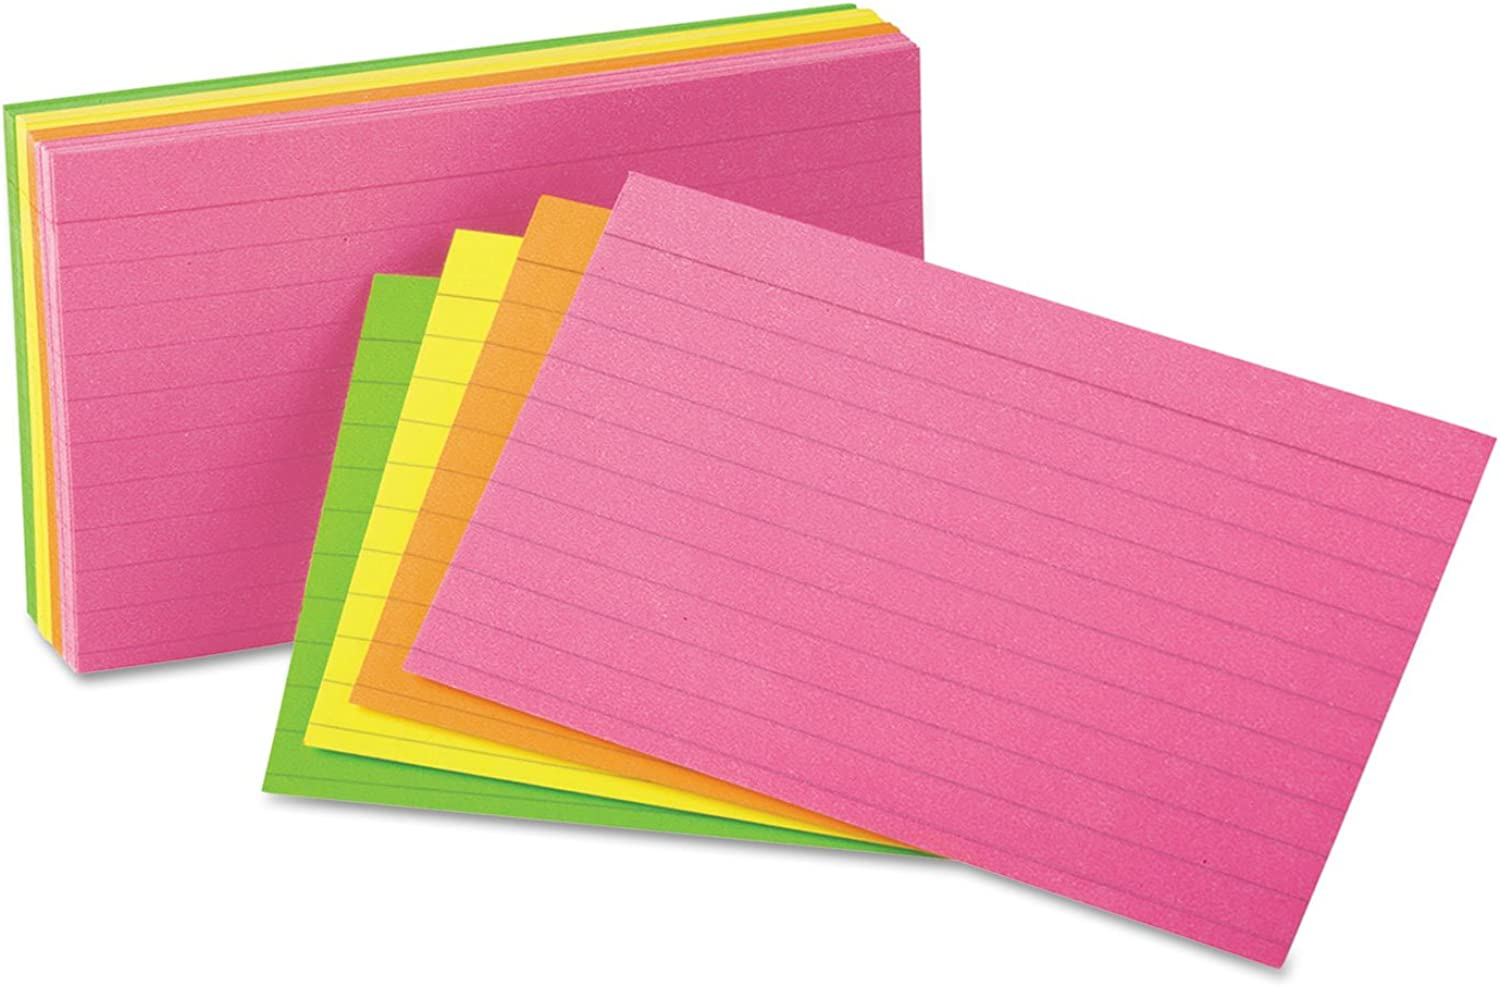 Ruled Neon Glow Index Cards Größe  4 H x x x 6 W by Universal B00VVFTUUE | Outlet Online Store  8ff60c